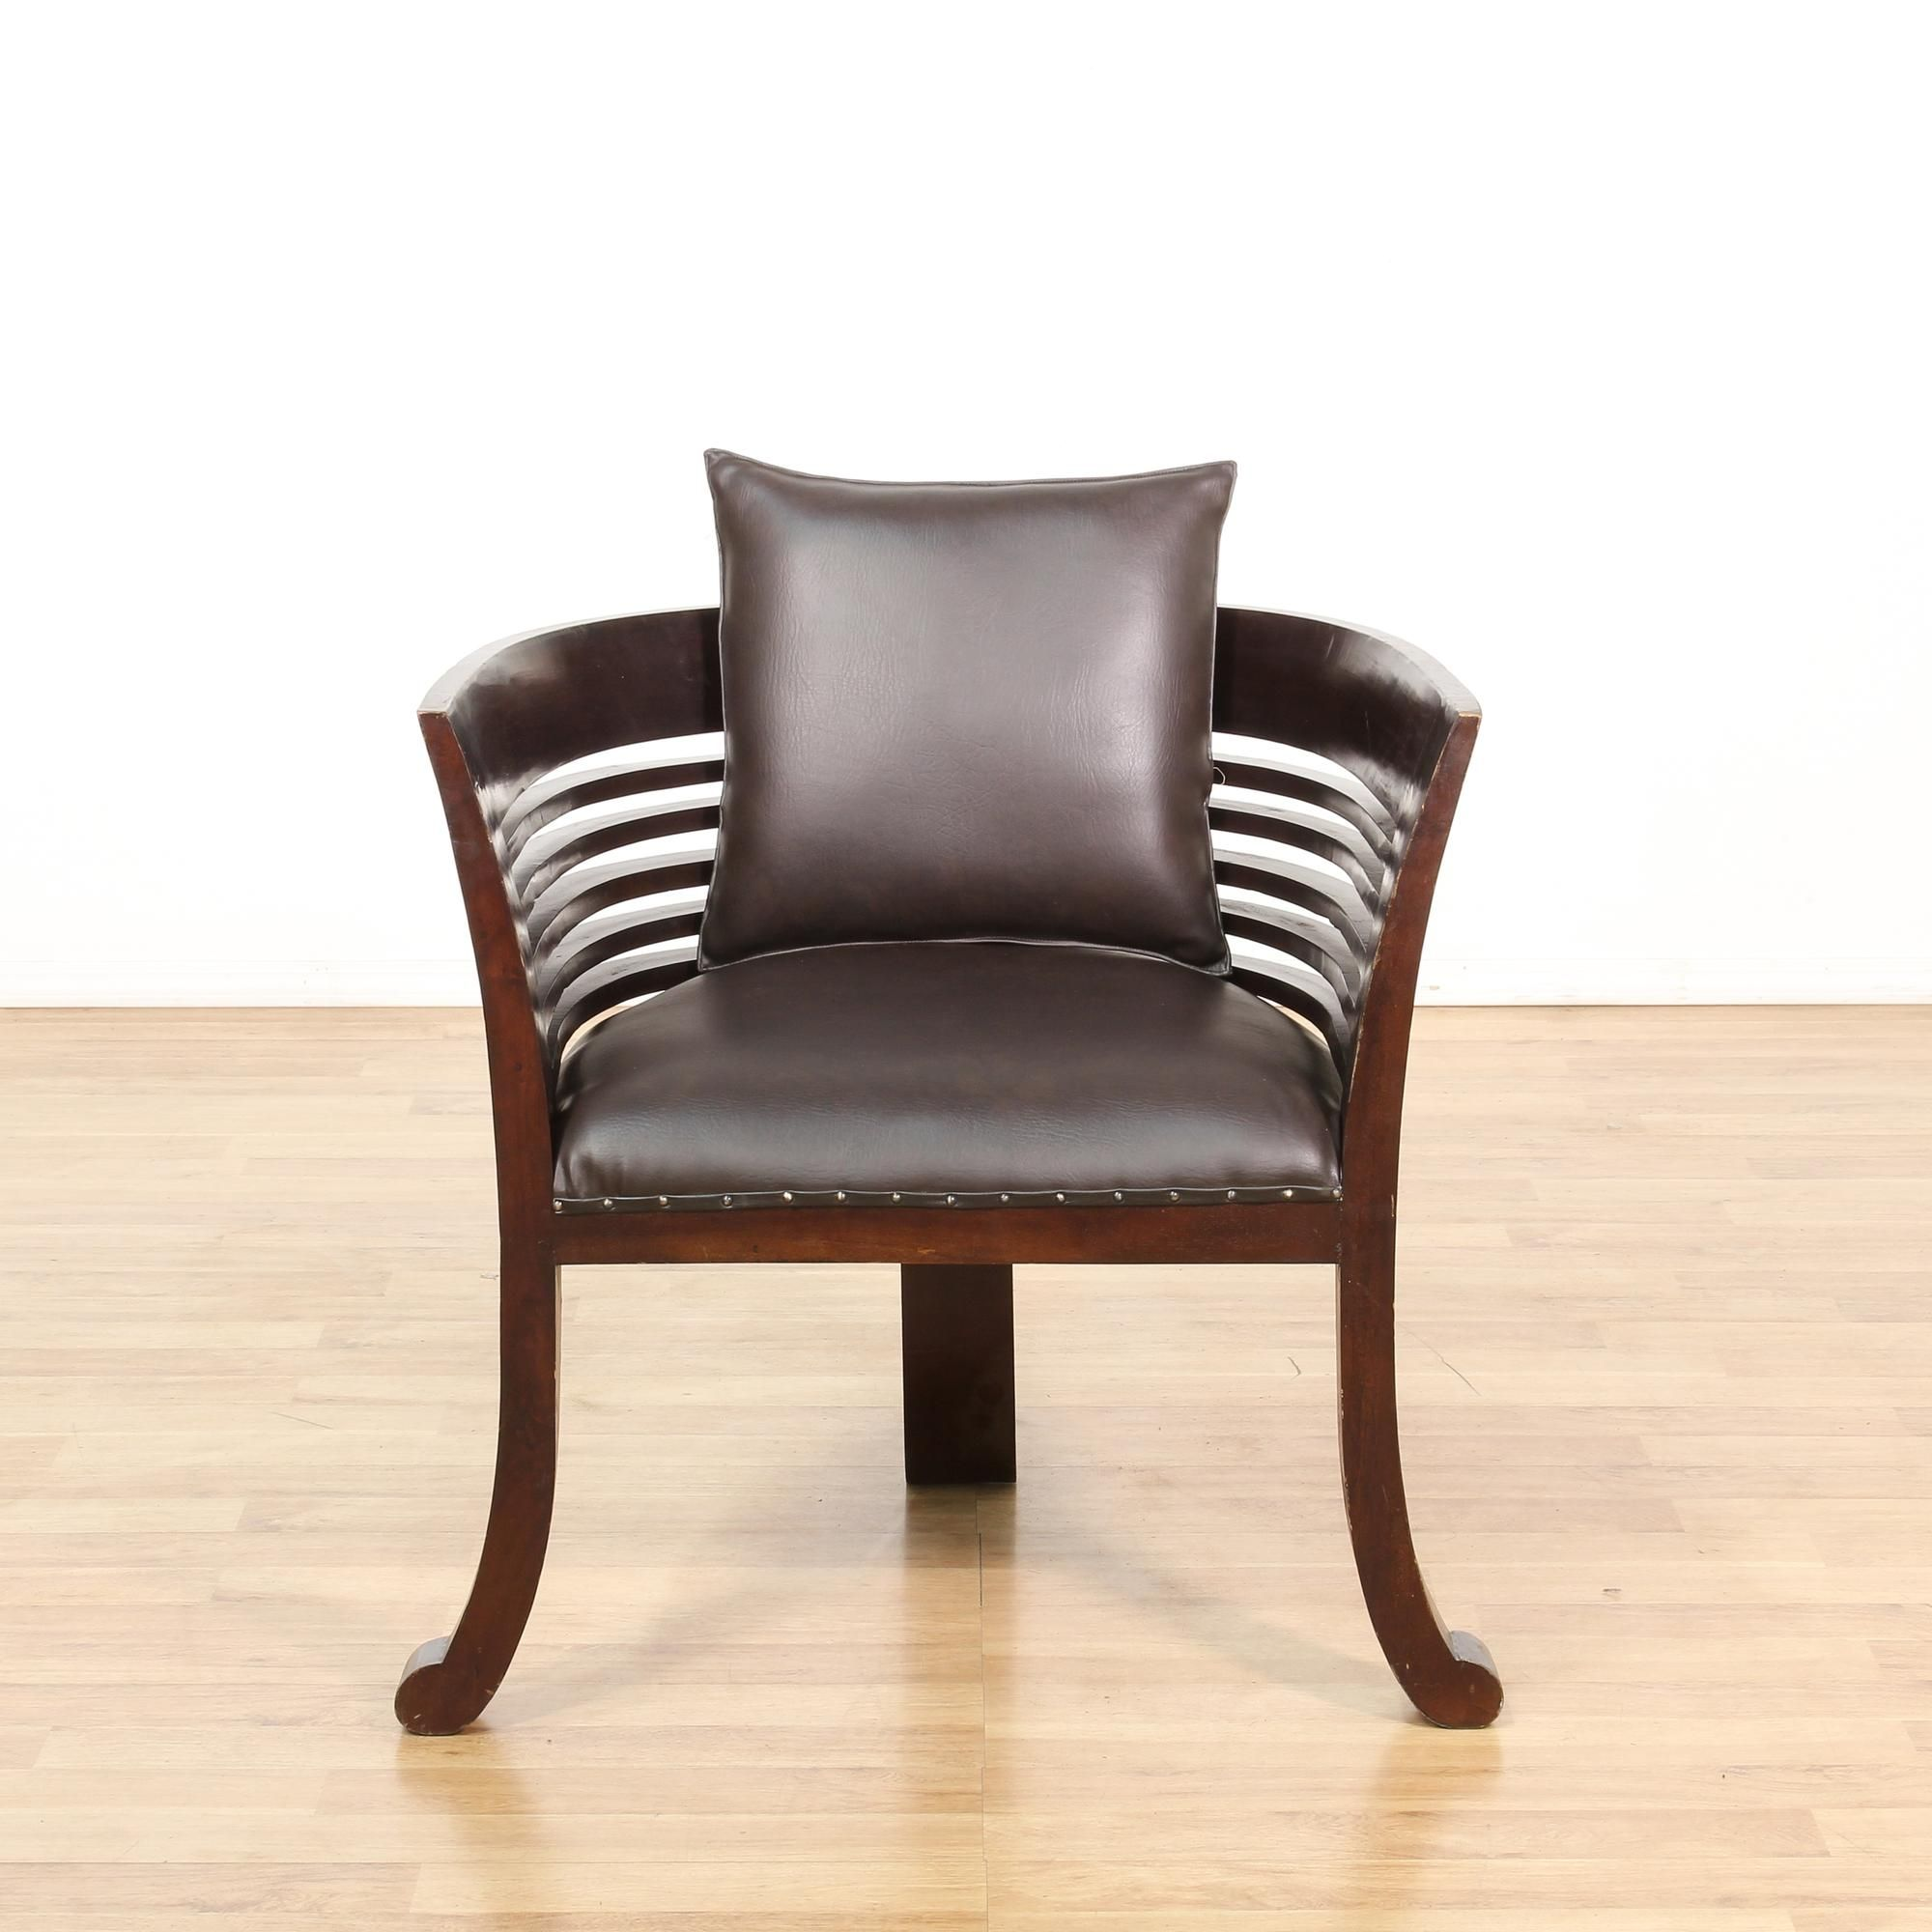 Best This Barrel Chair Is Featured In A Solid Wood With A Dark 400 x 300